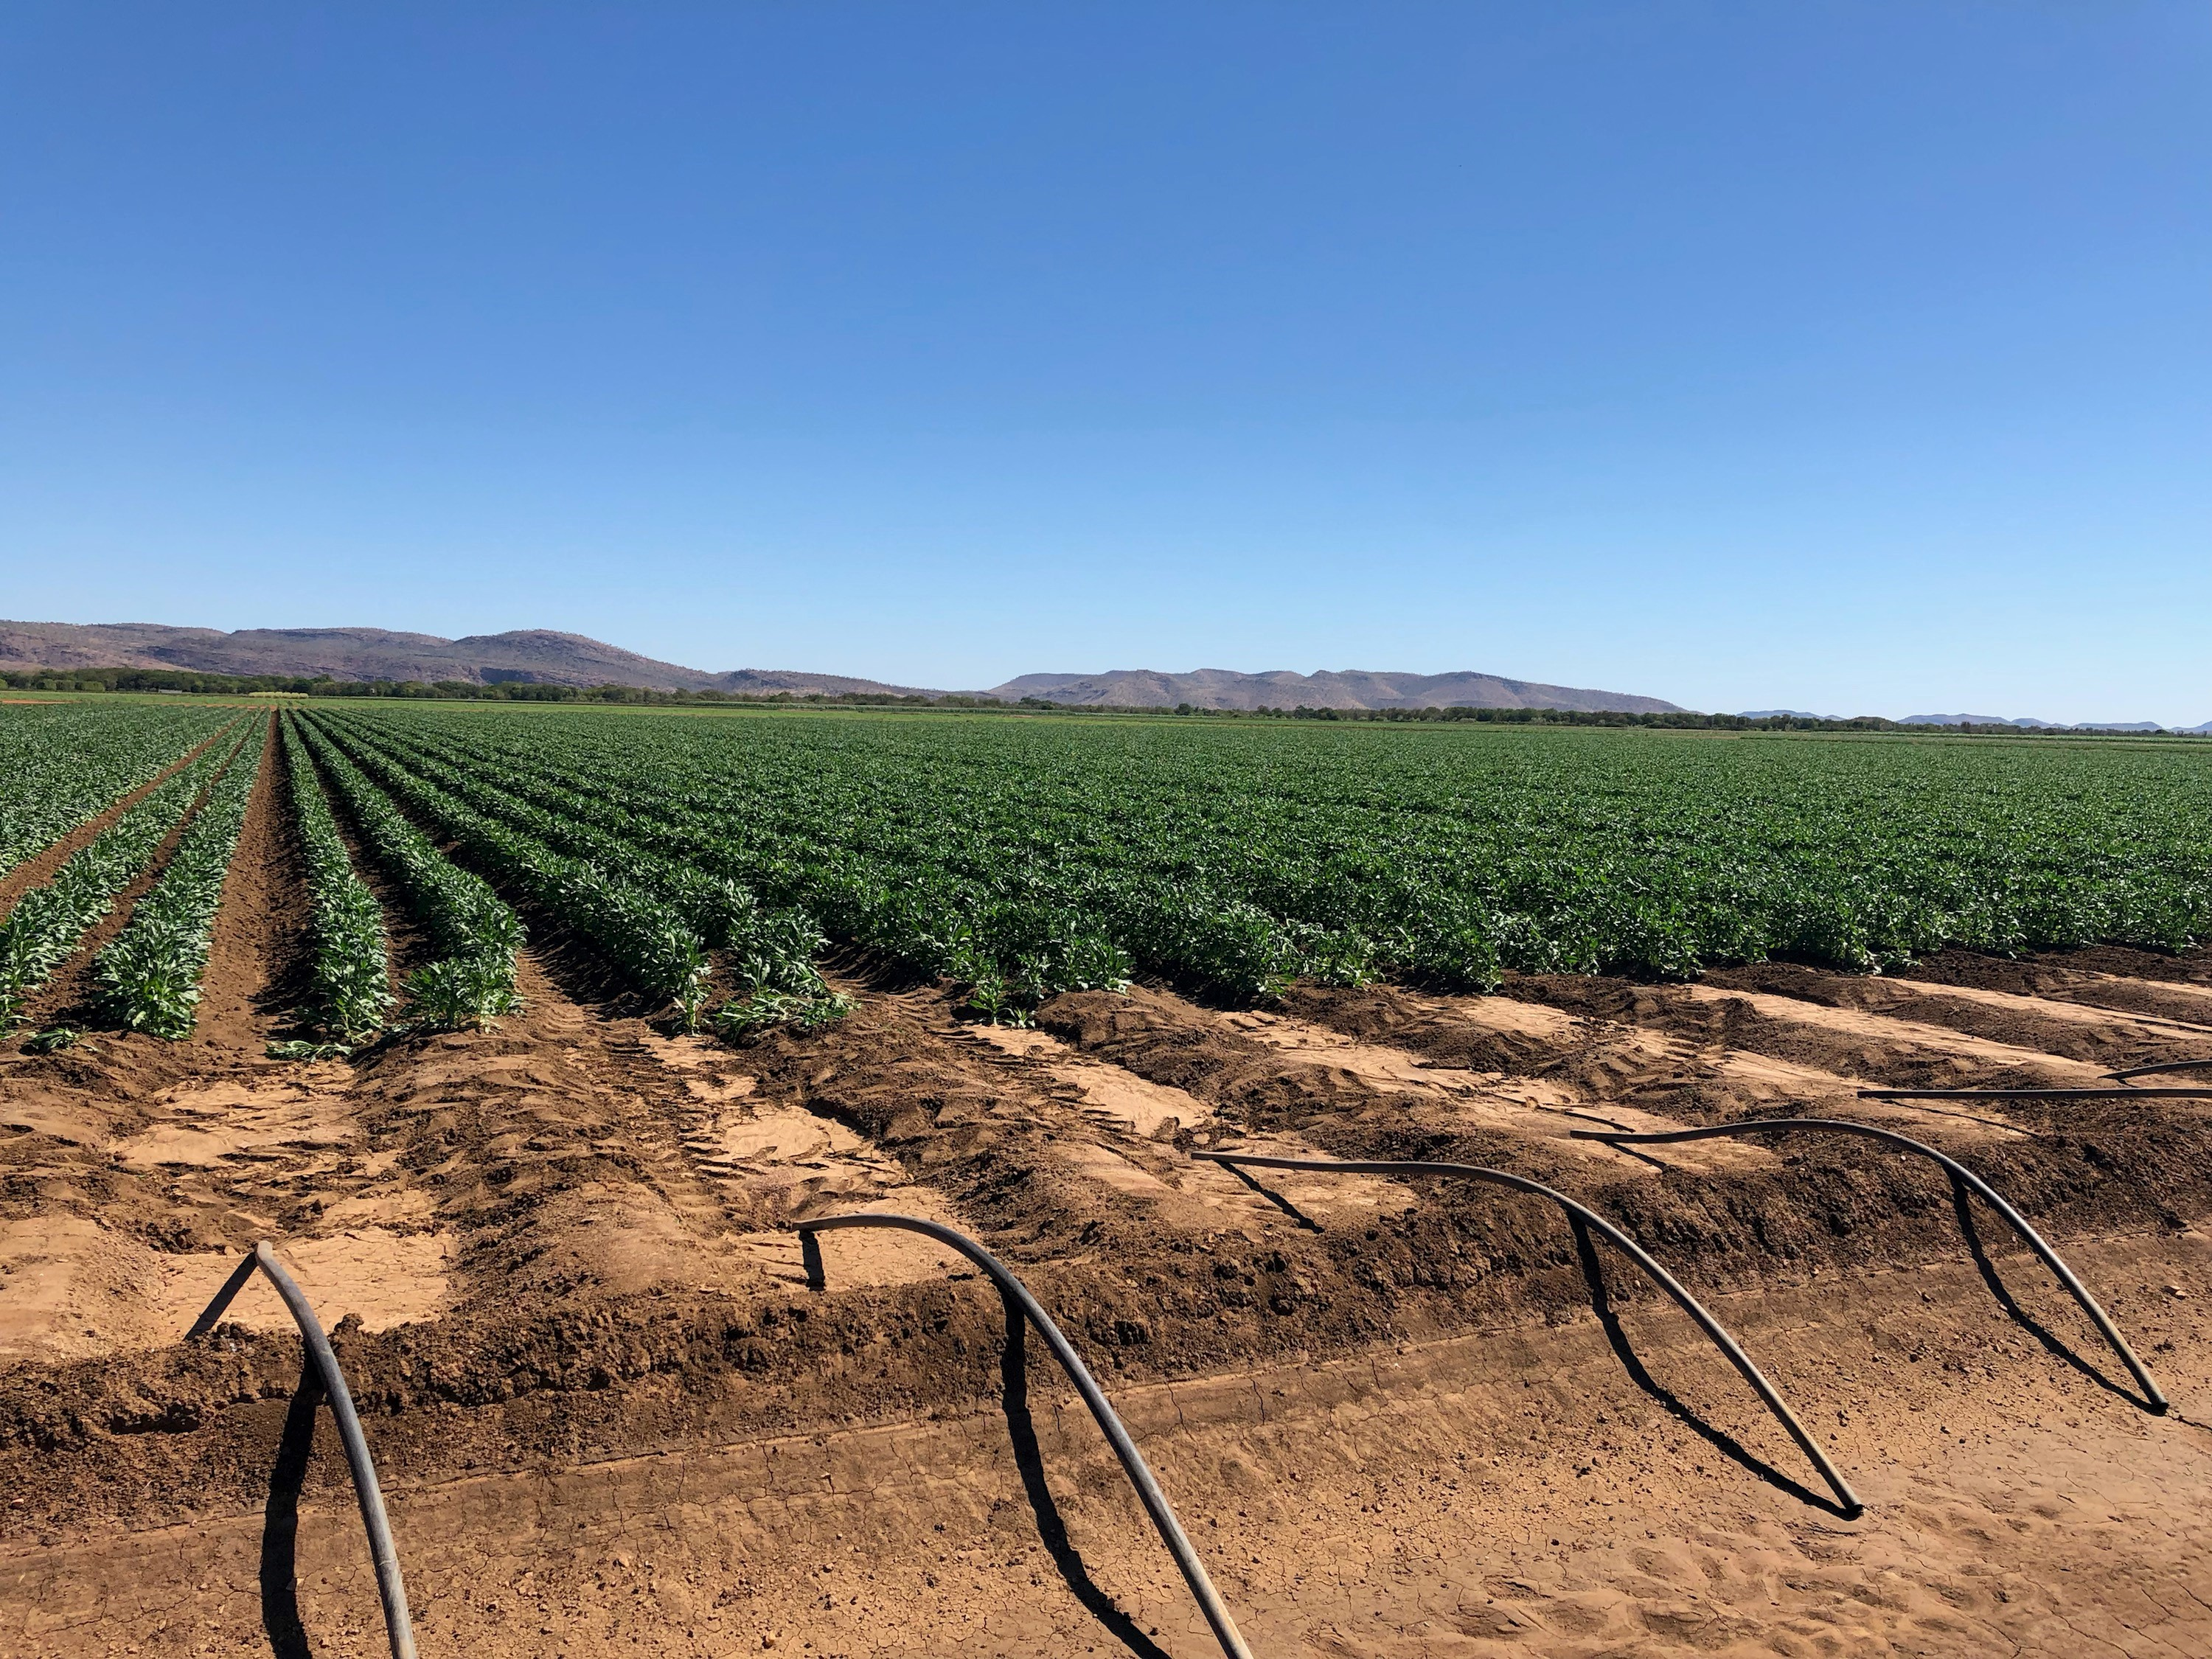 Cotton crop growing in irrigation in Kununurra WA